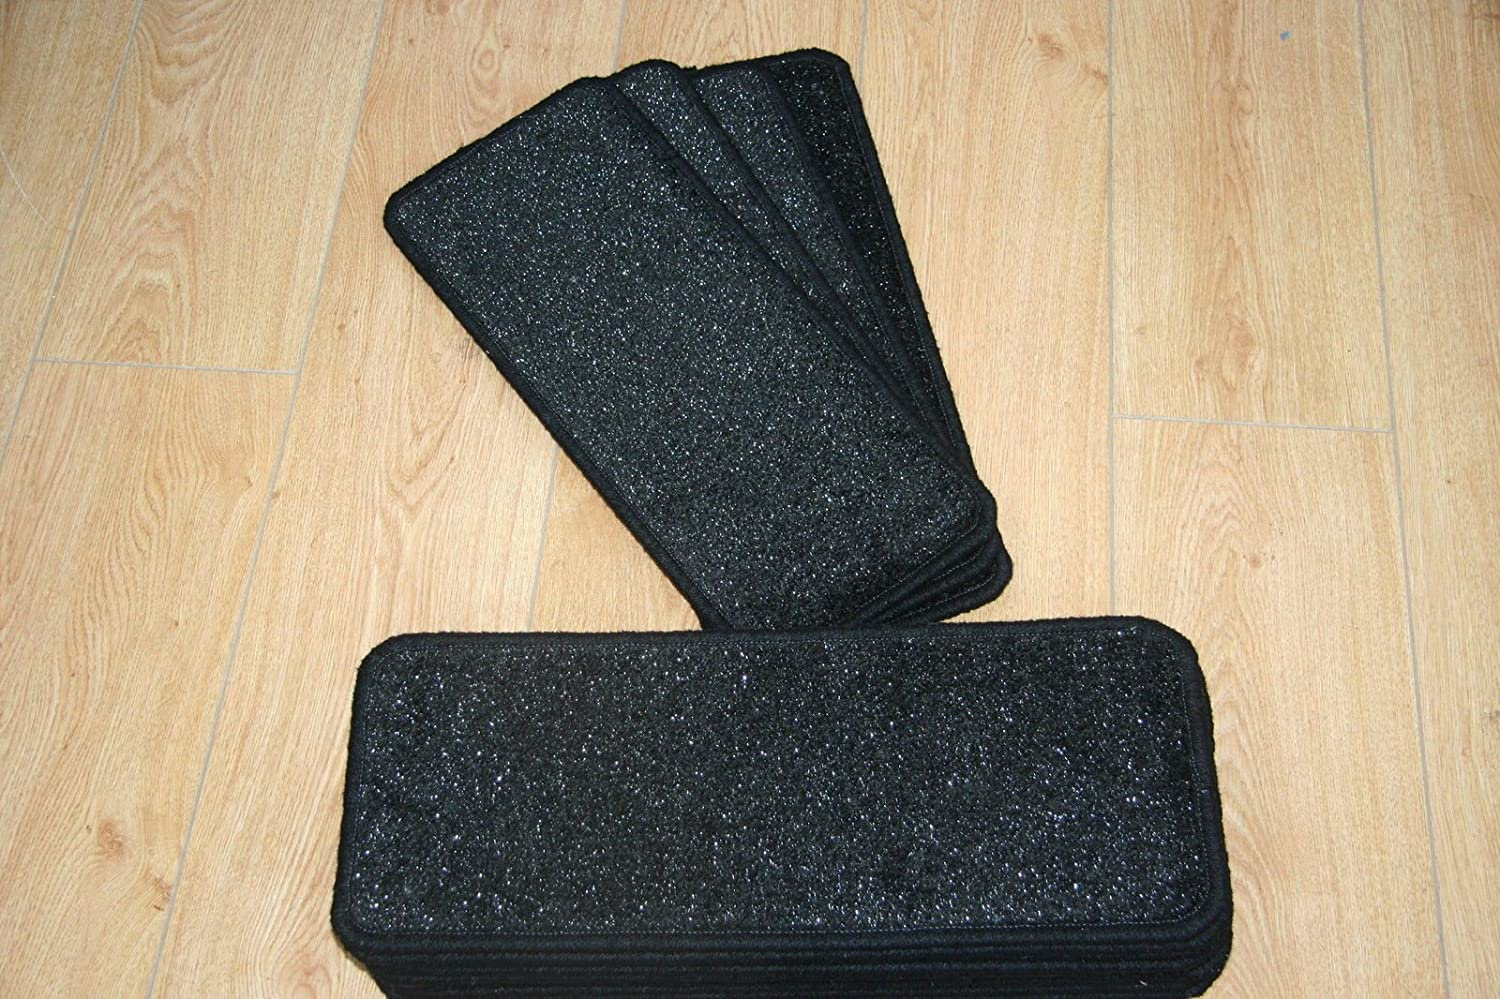 14 Black Glitter Stair Pads Carpet Stair Treads Black Sparkle Pad 8inc x 20inc austins